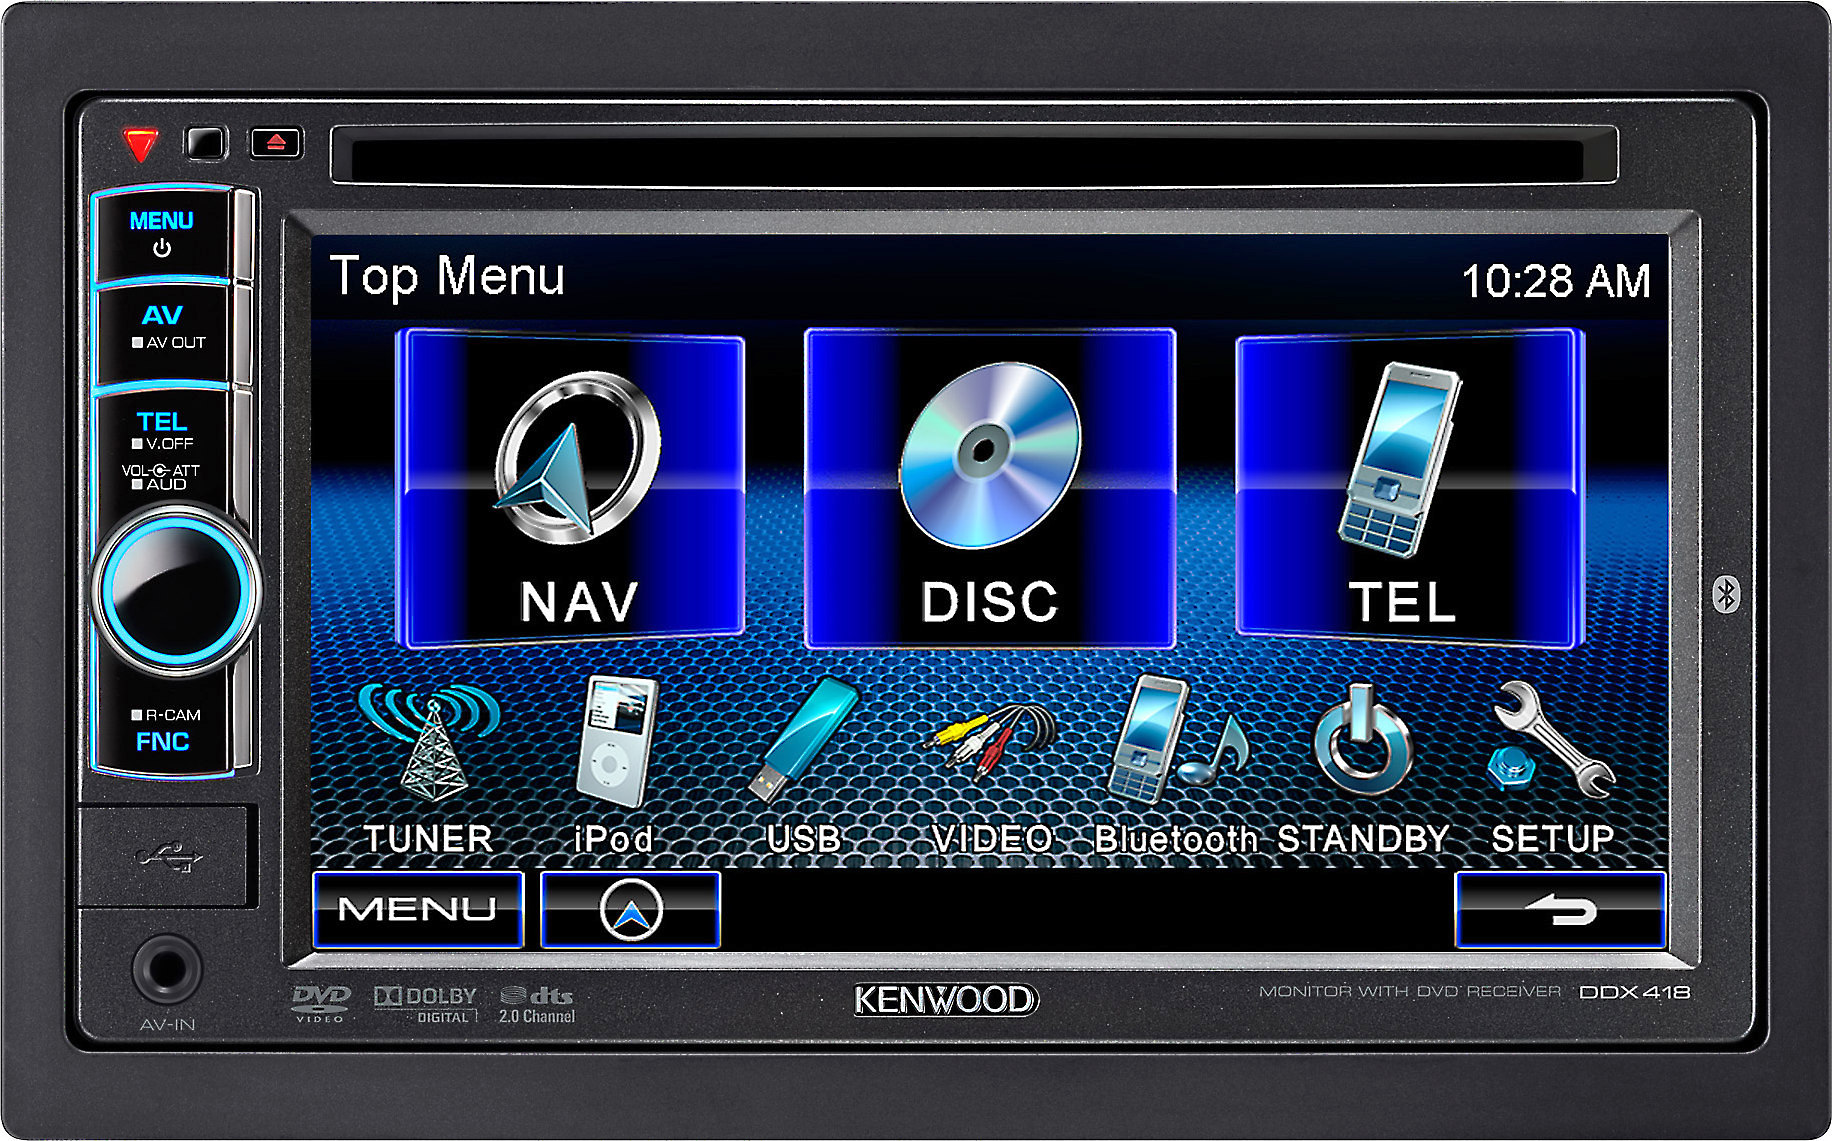 Wiring Diagram For Kenwood Ddx616 Valley Wiring Diagrams ... on car stereo wiring colors, kenwood harness pinout, car speaker wire colors, toyota pickup radio wires colors,